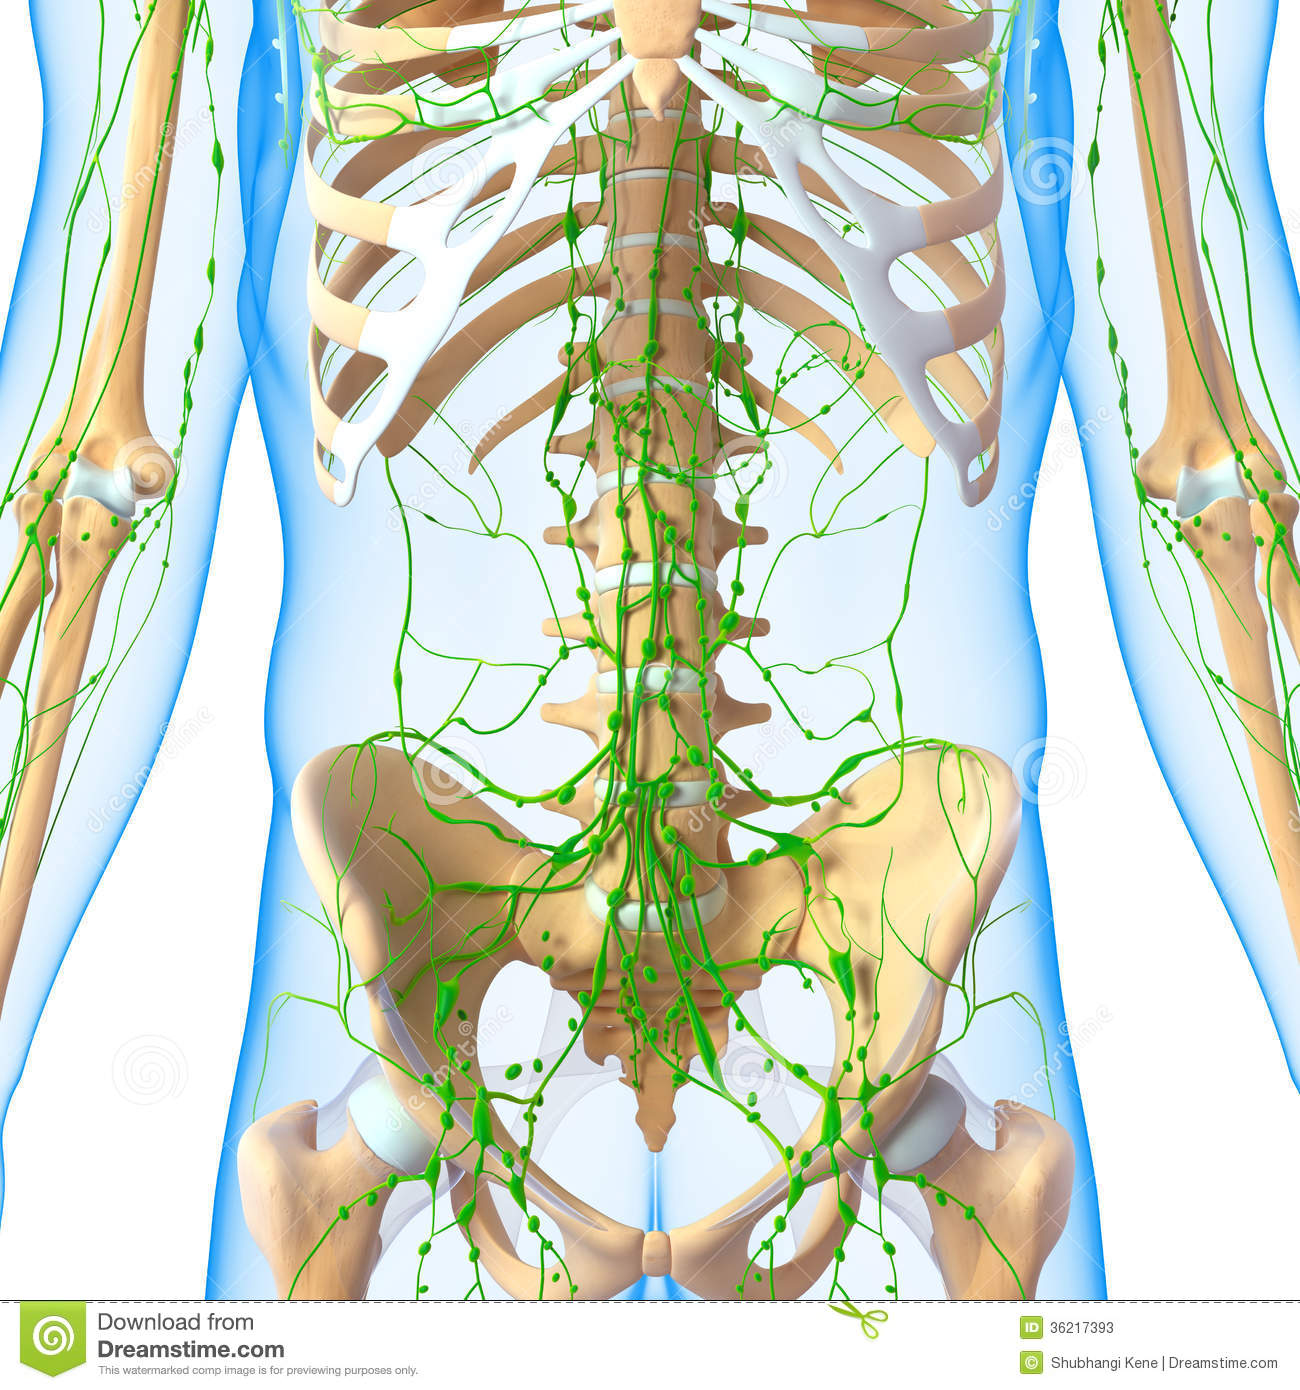 Male front view anatomy 3d illustration of the Lymphatic system with ...